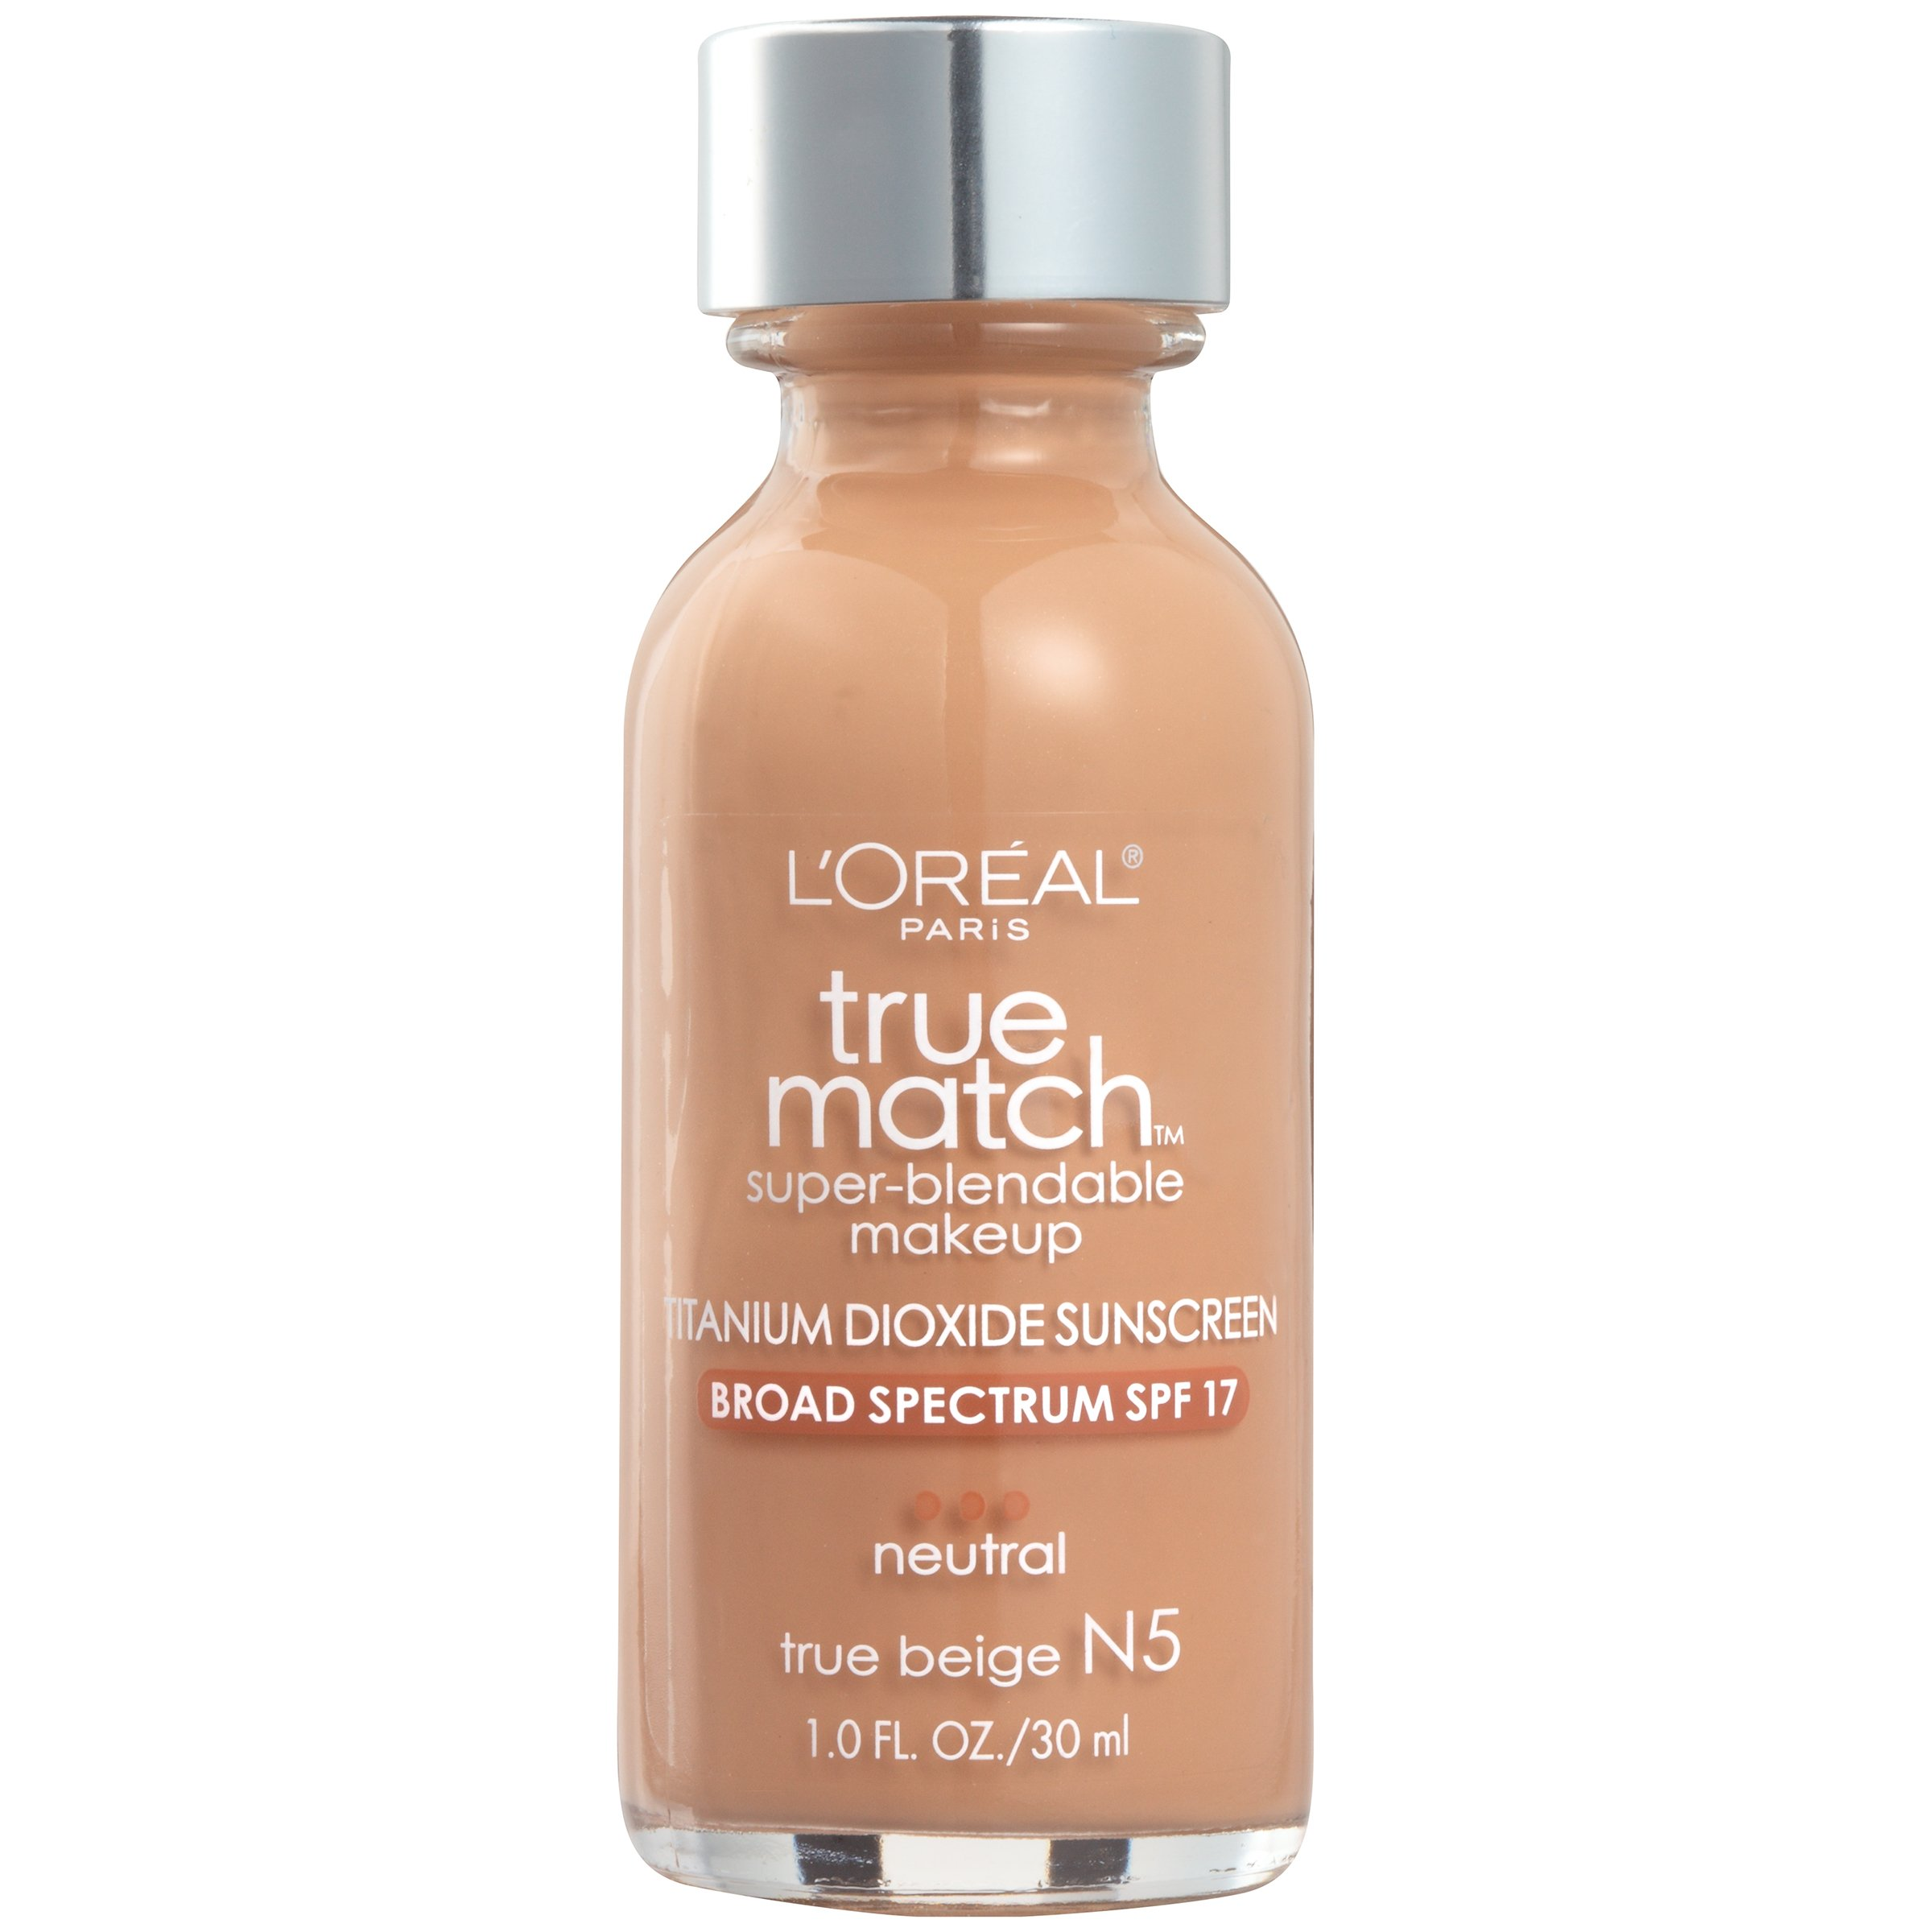 L'Oréal Paris True Match Super-Blendable Foundation Makeup, True Beige, 1 fl. oz.